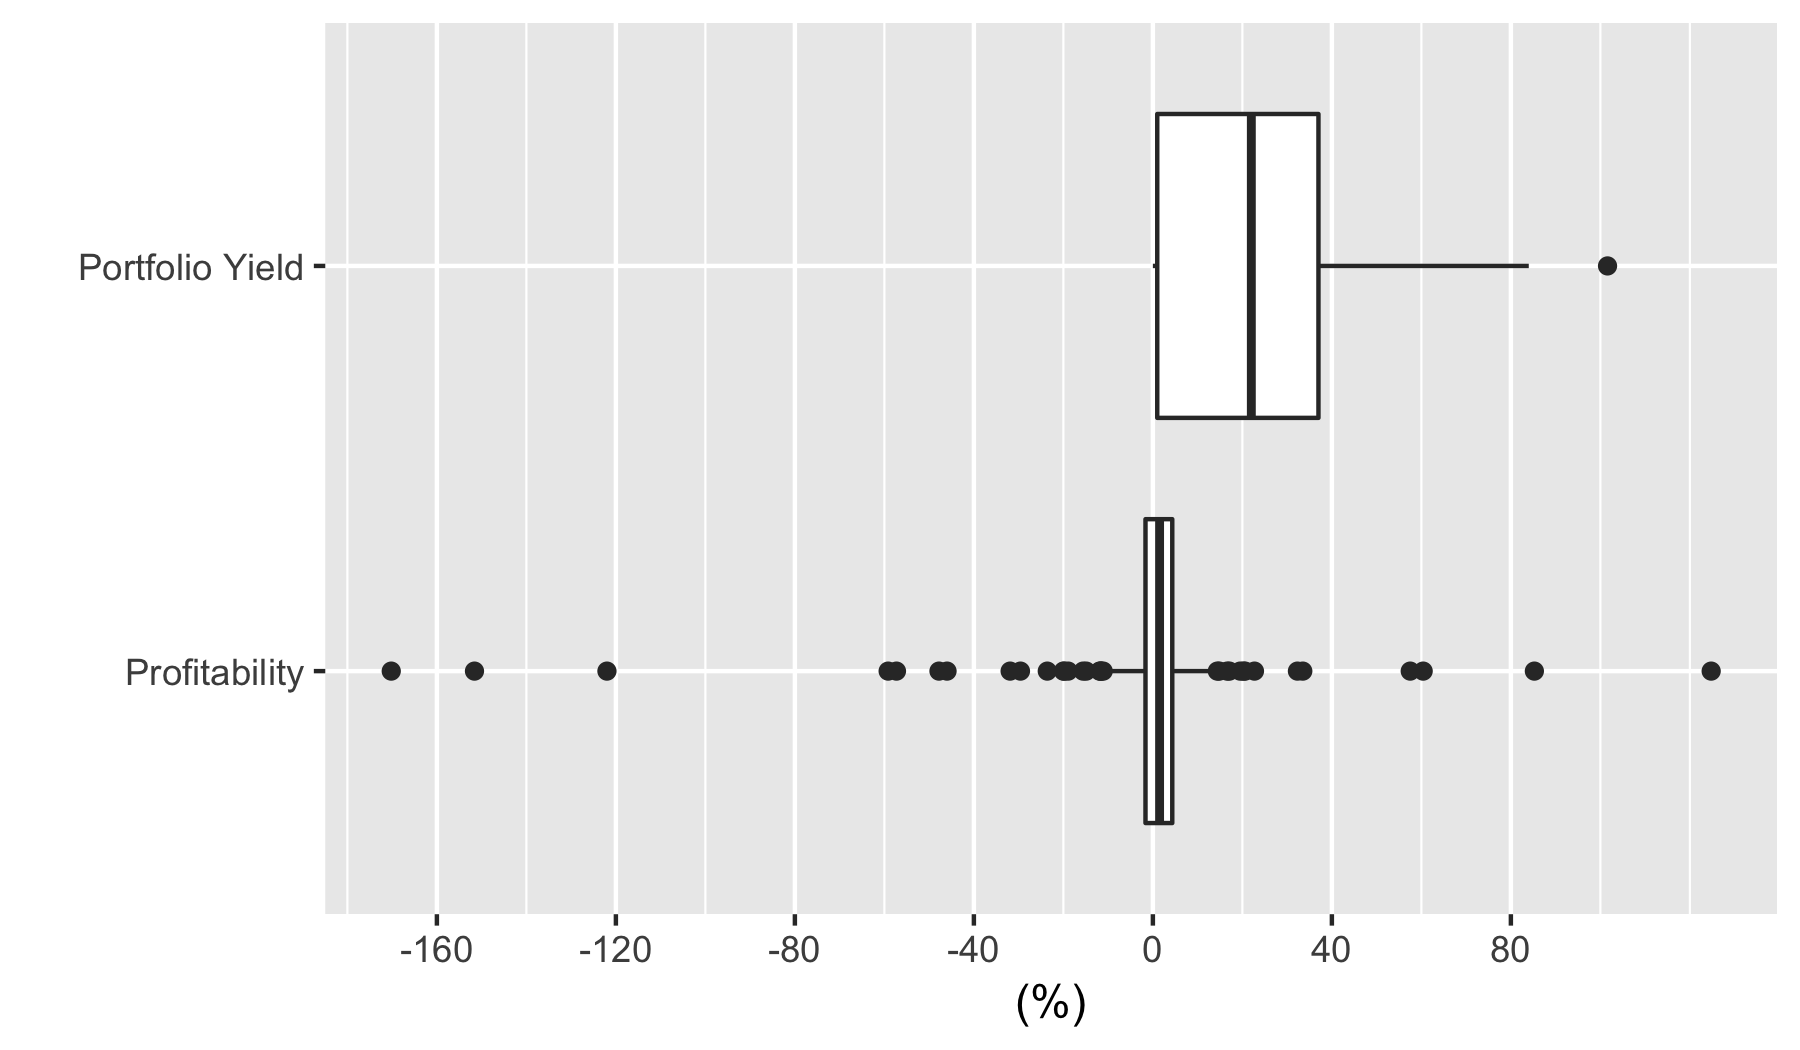 Box plot of field partner Portfolio Yield and Profitability (data is also given in table)